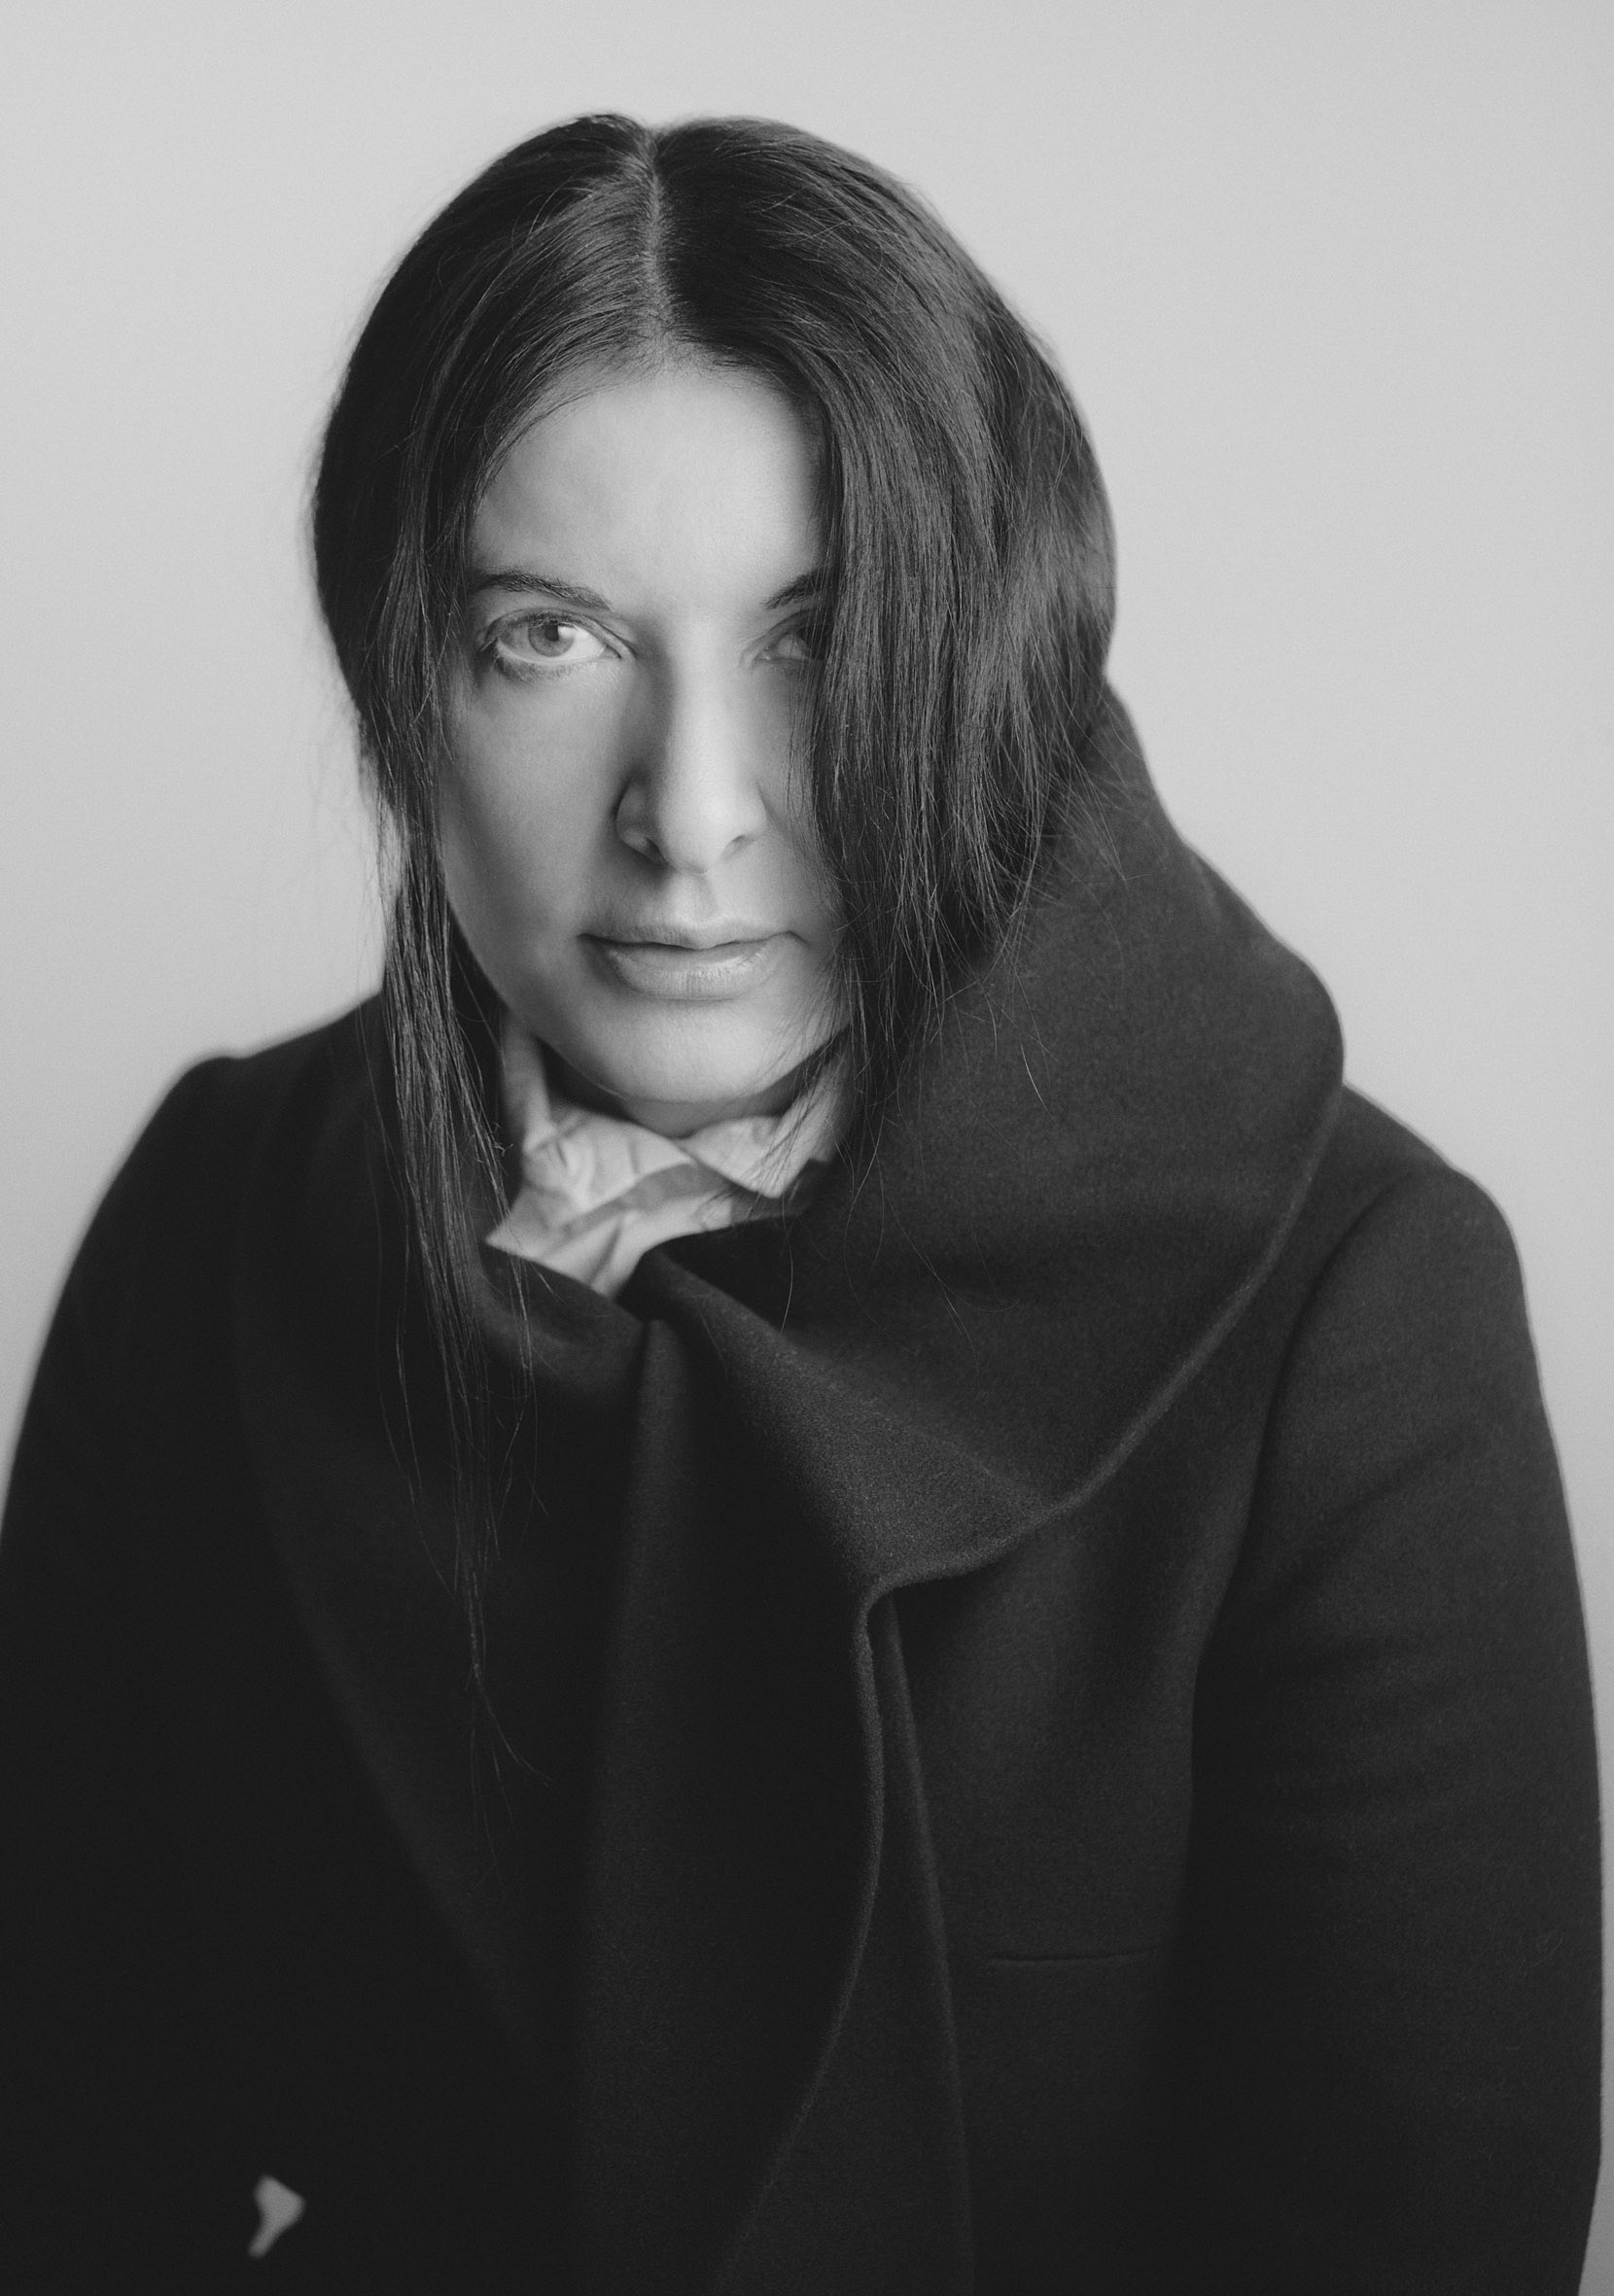 Marina Abramović. Photo: Nabil Elderkin, 2013.